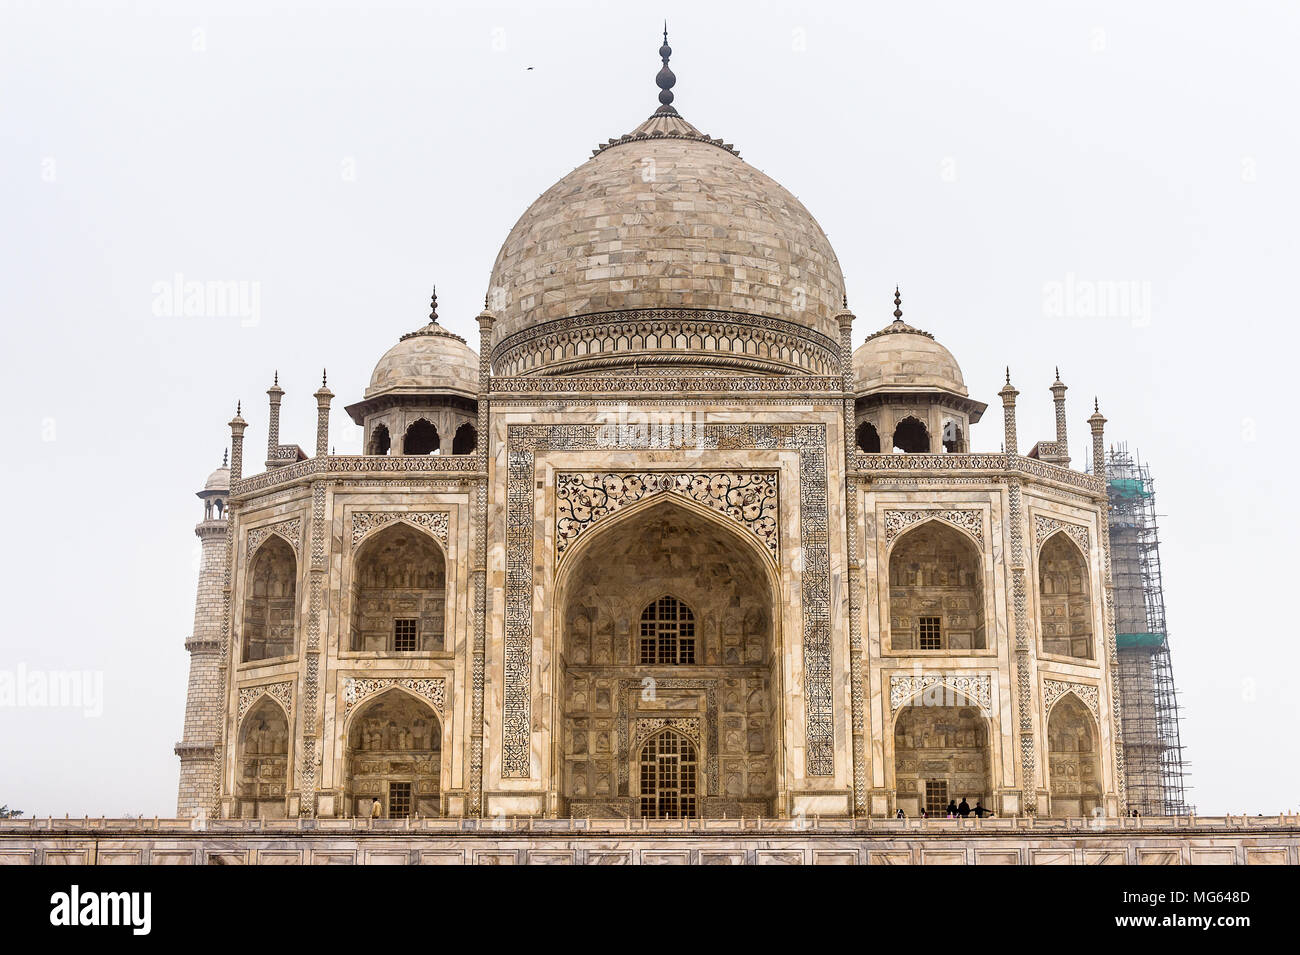 Taj Mahal (Crown of Palaces), an ivory-white marble mausoleum on the south bank of the Yamuna river in Agra. - Stock Image